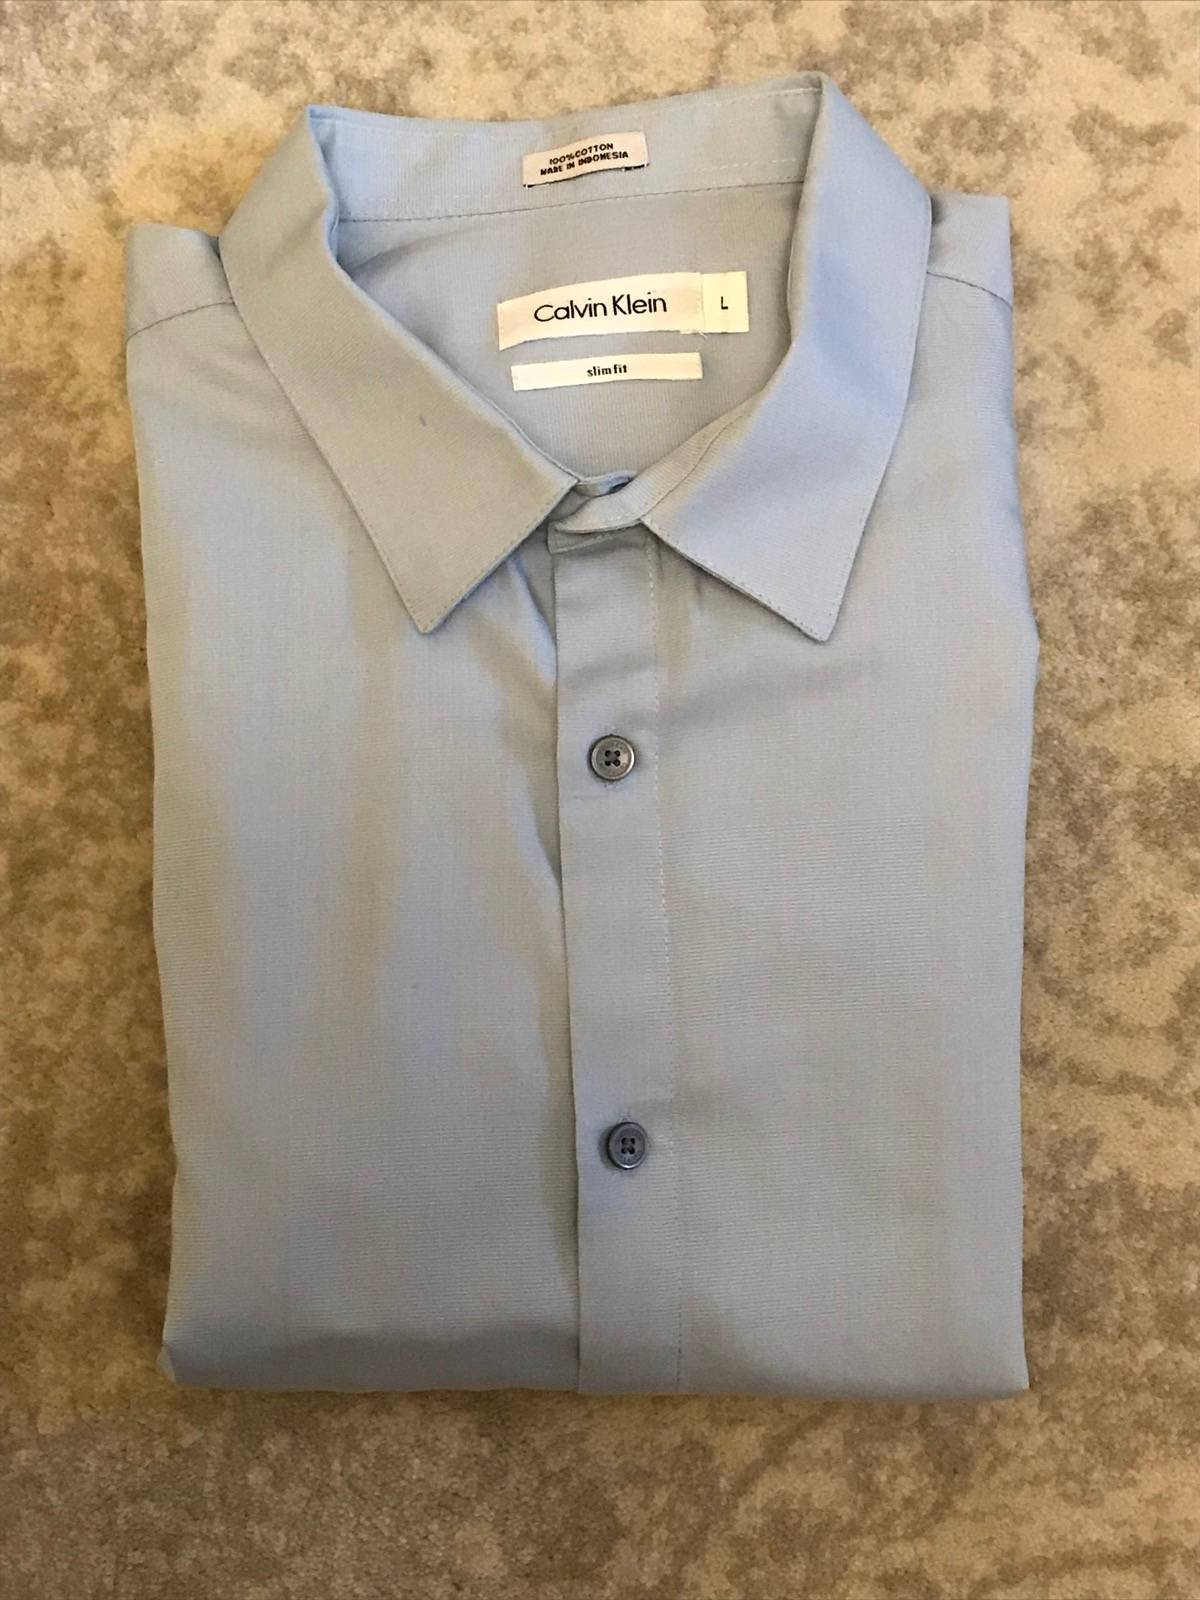 Calvin Klein Mint Calvin Klein Mens Light Blue Dress Shirt Large